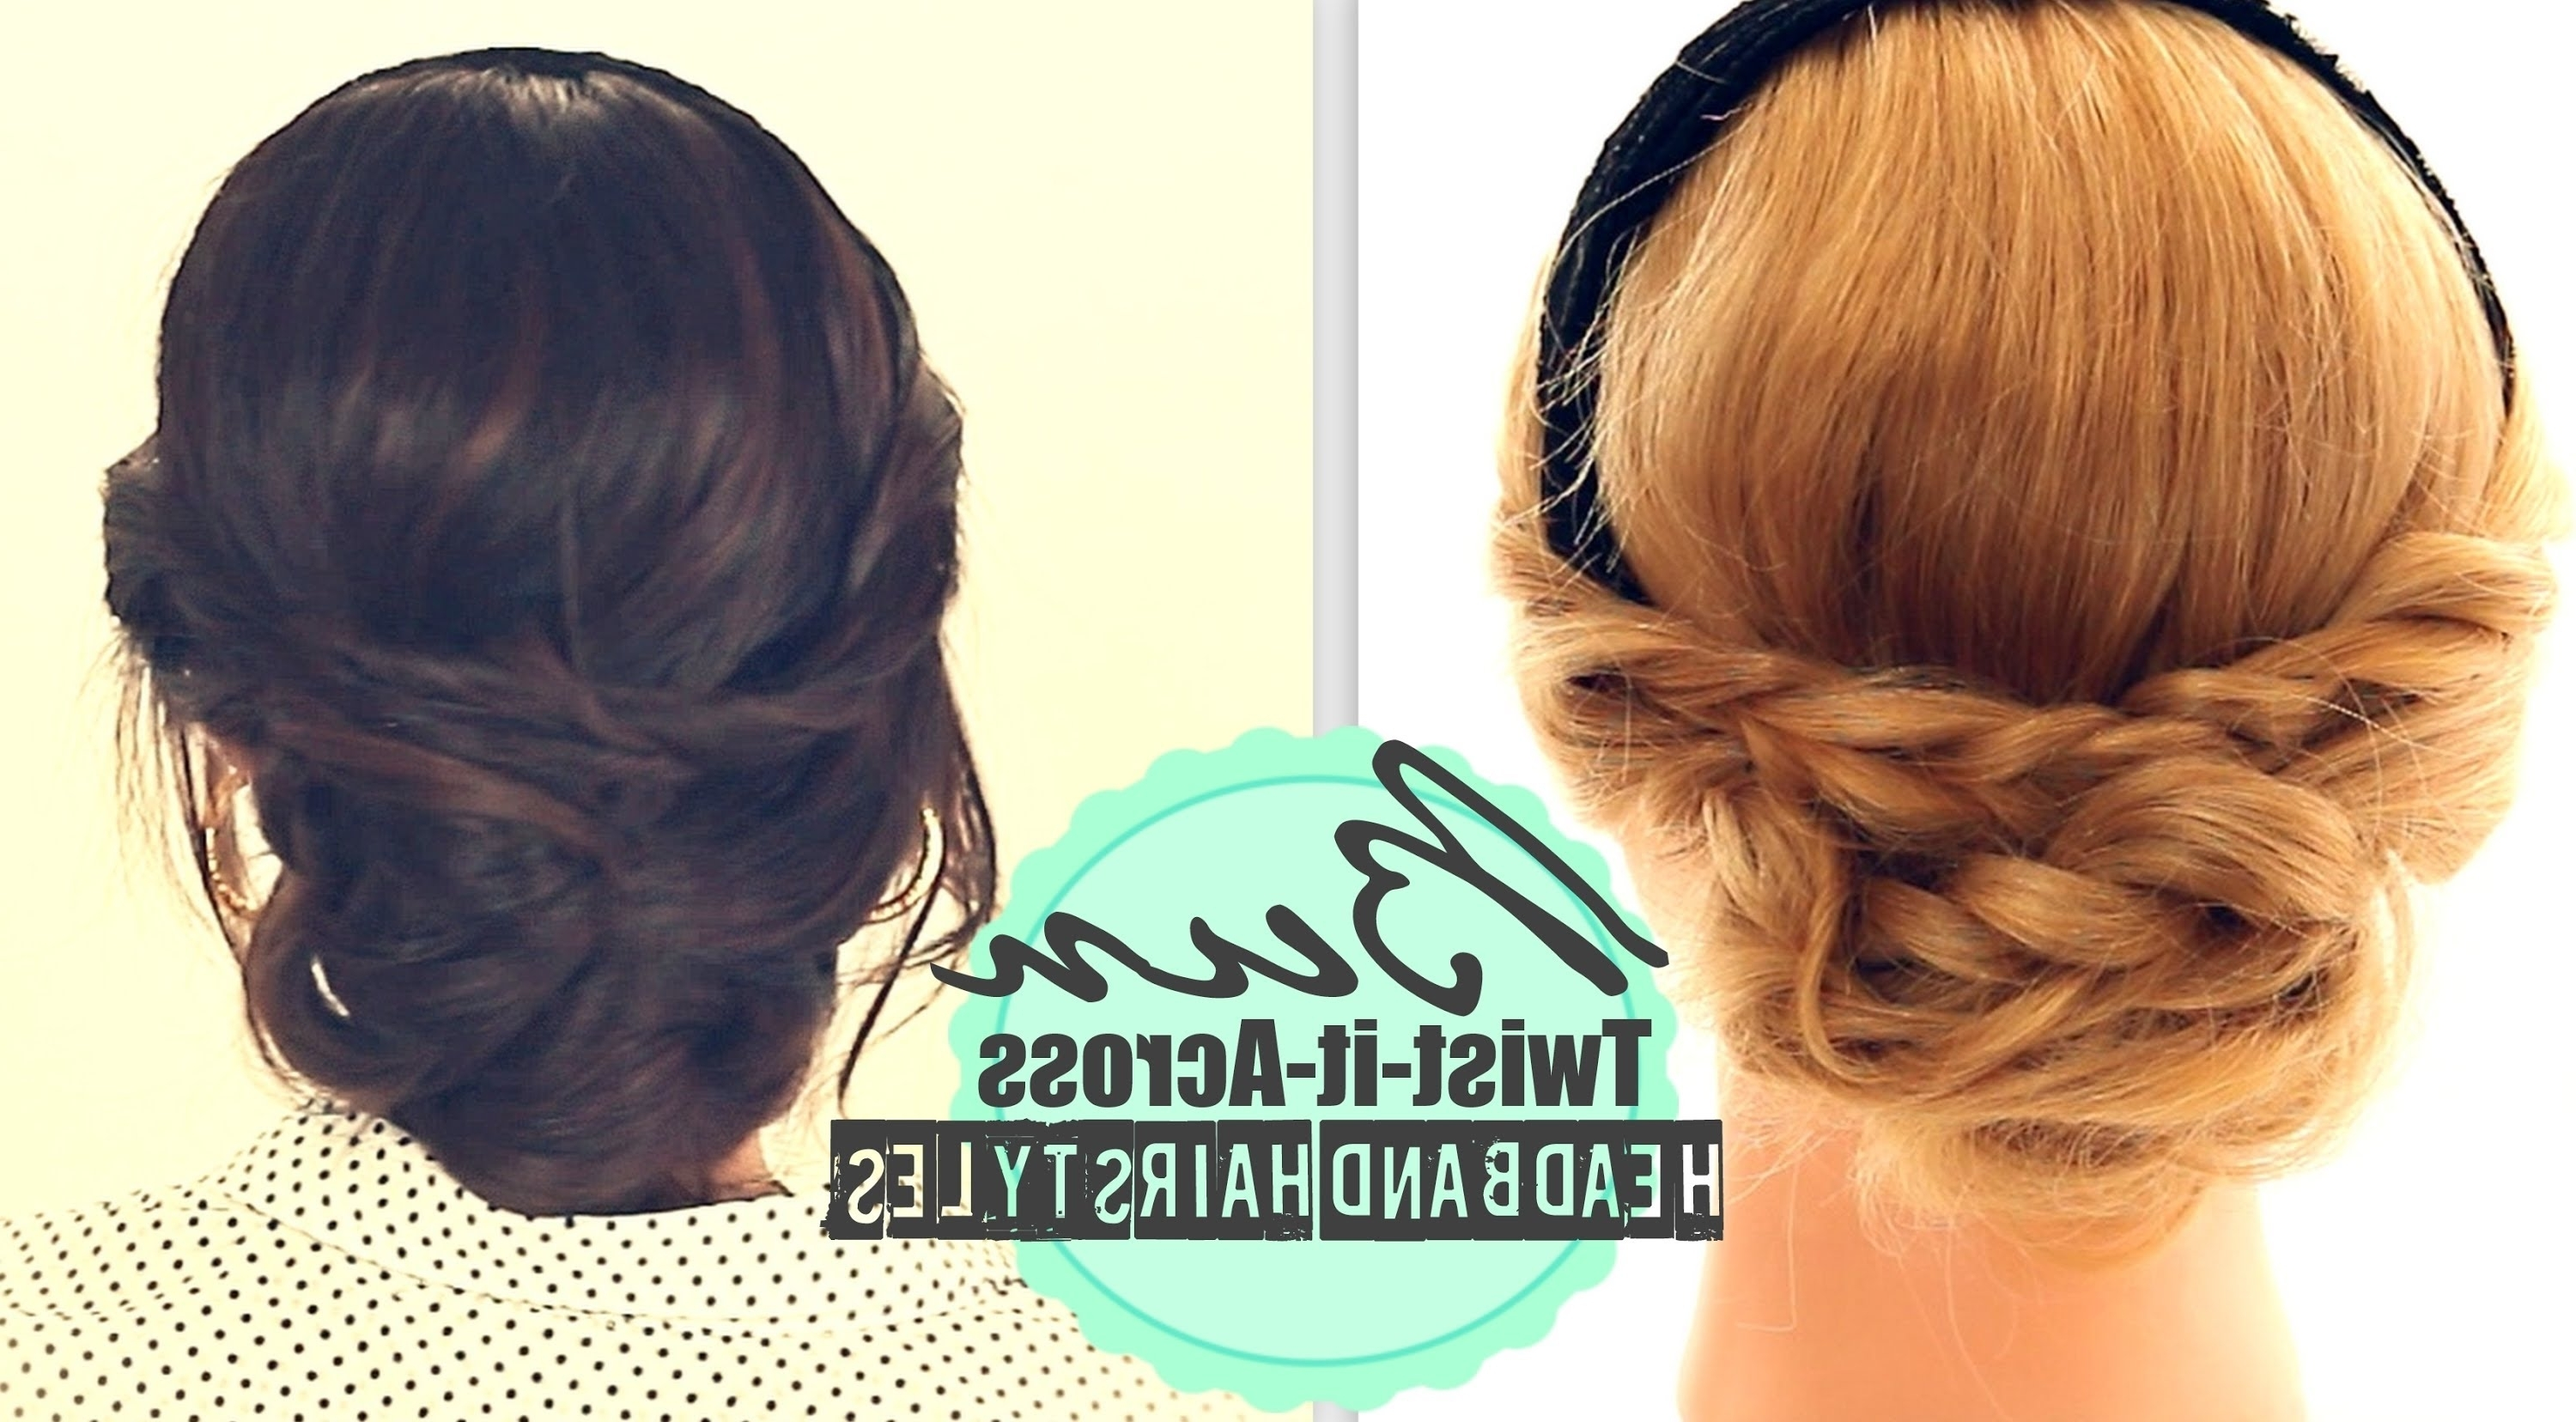 ☆ Cute Headband Hairstyles #2| Everyday Bun Twisted Updo For Medium In Easy Long Hair Updo Everyday Hairstyles (View 7 of 15)